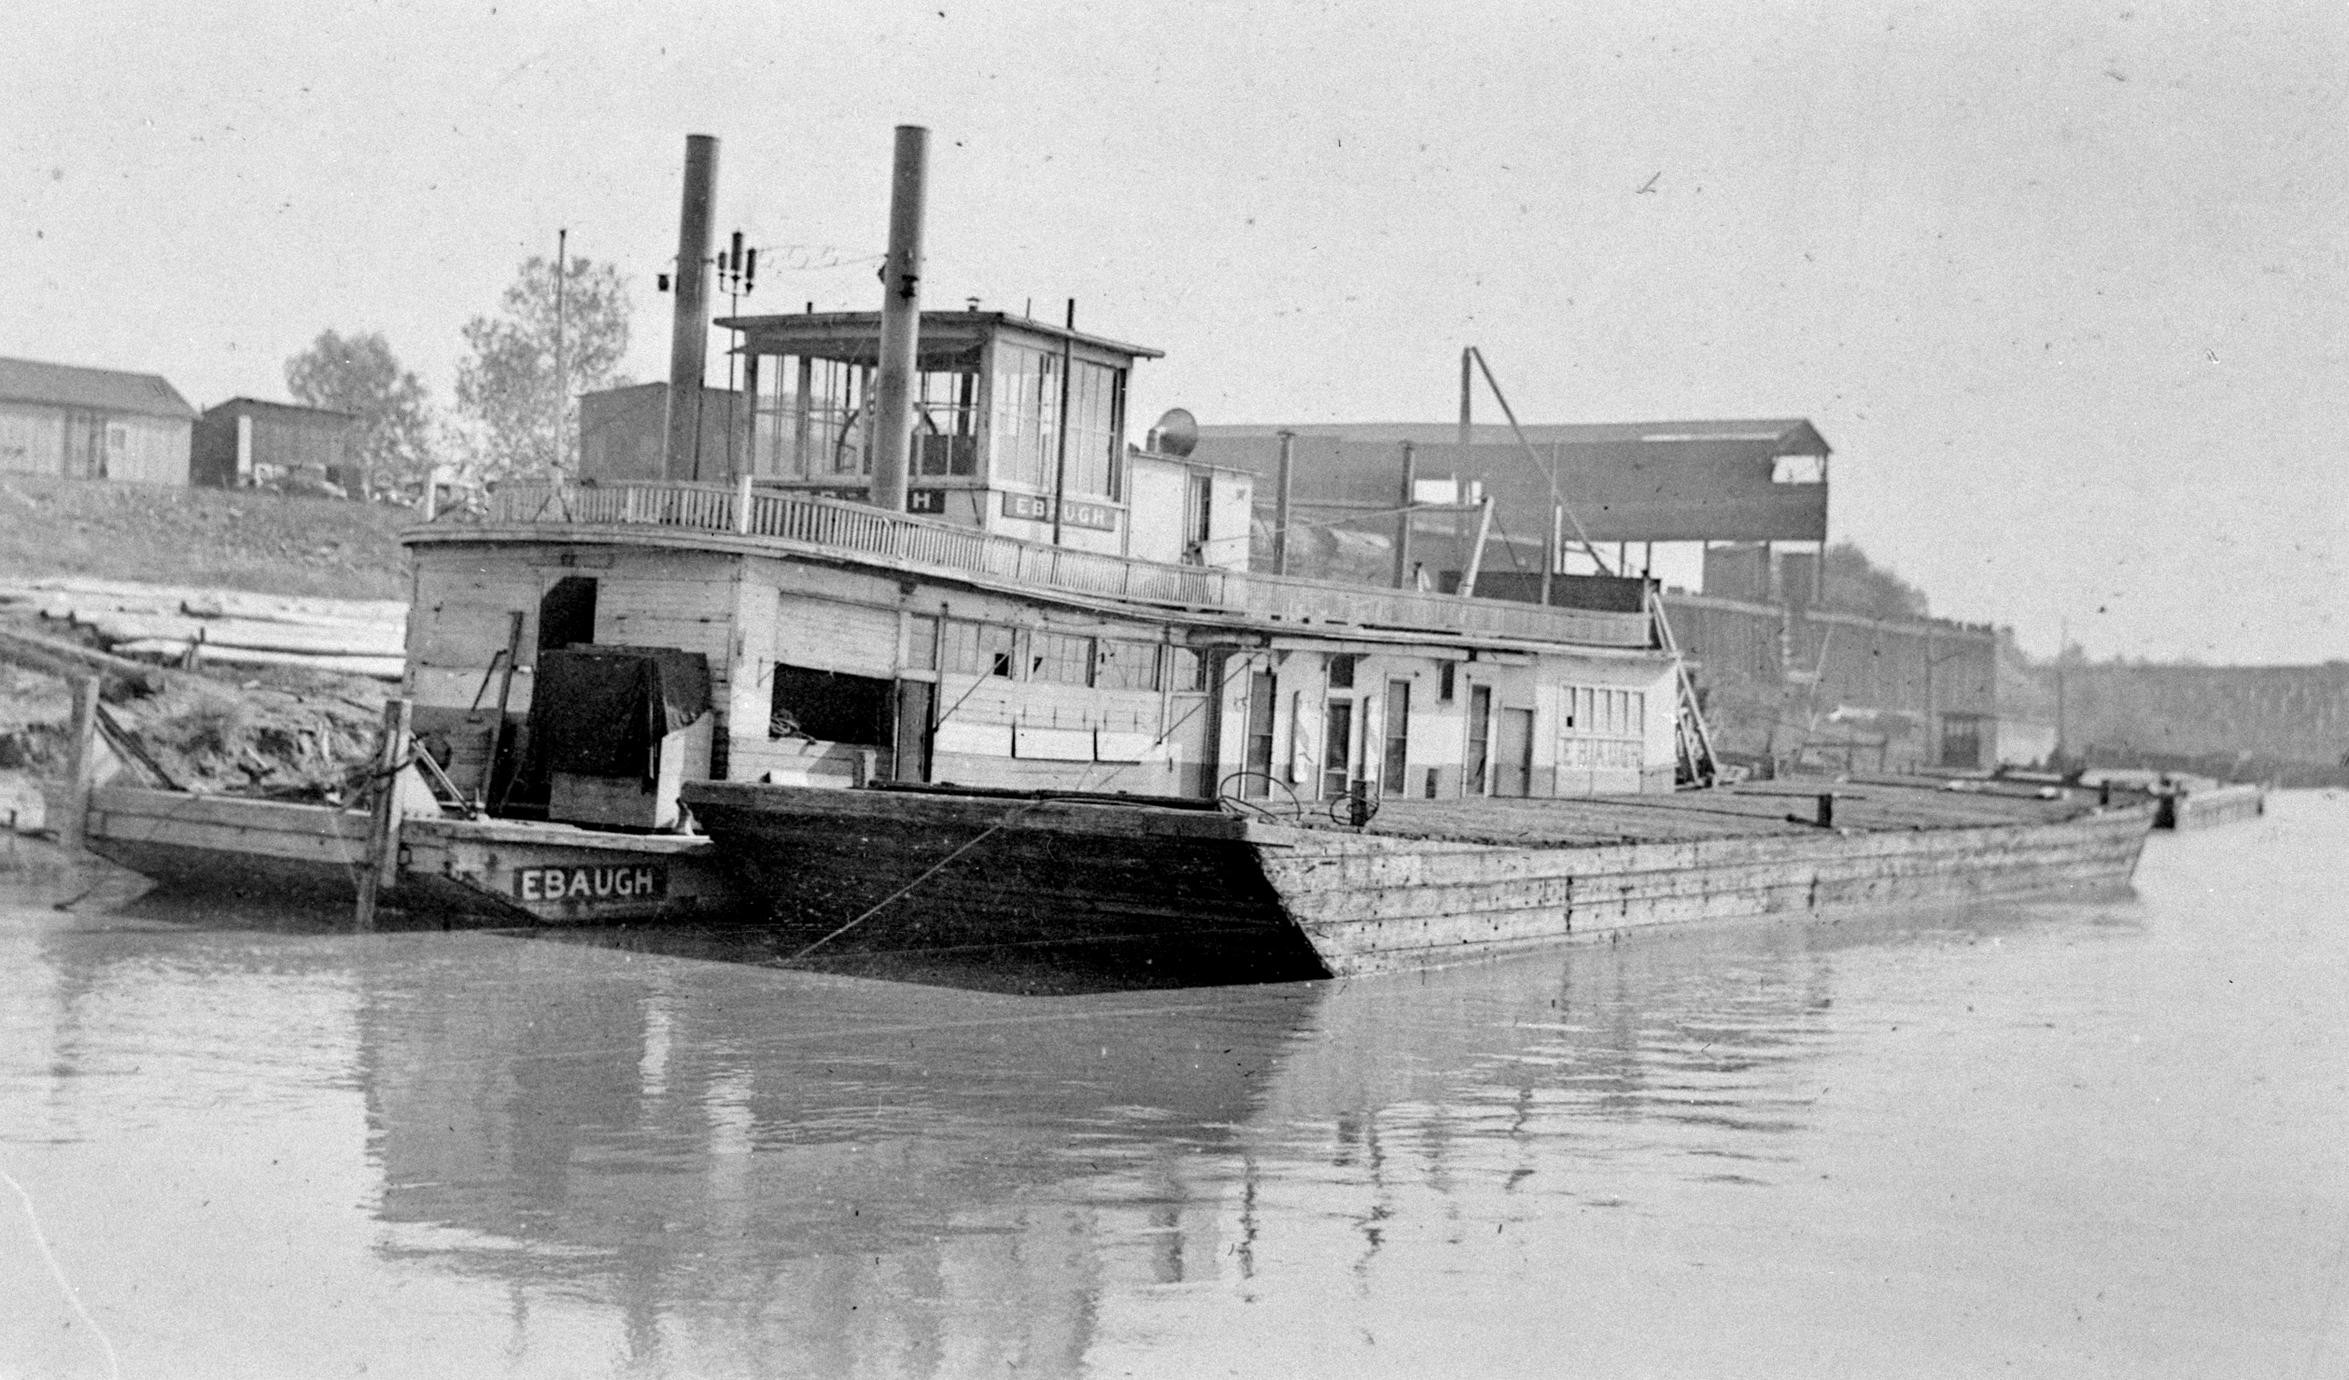 Ebaugh (Packet/Towboat, 1902-?)